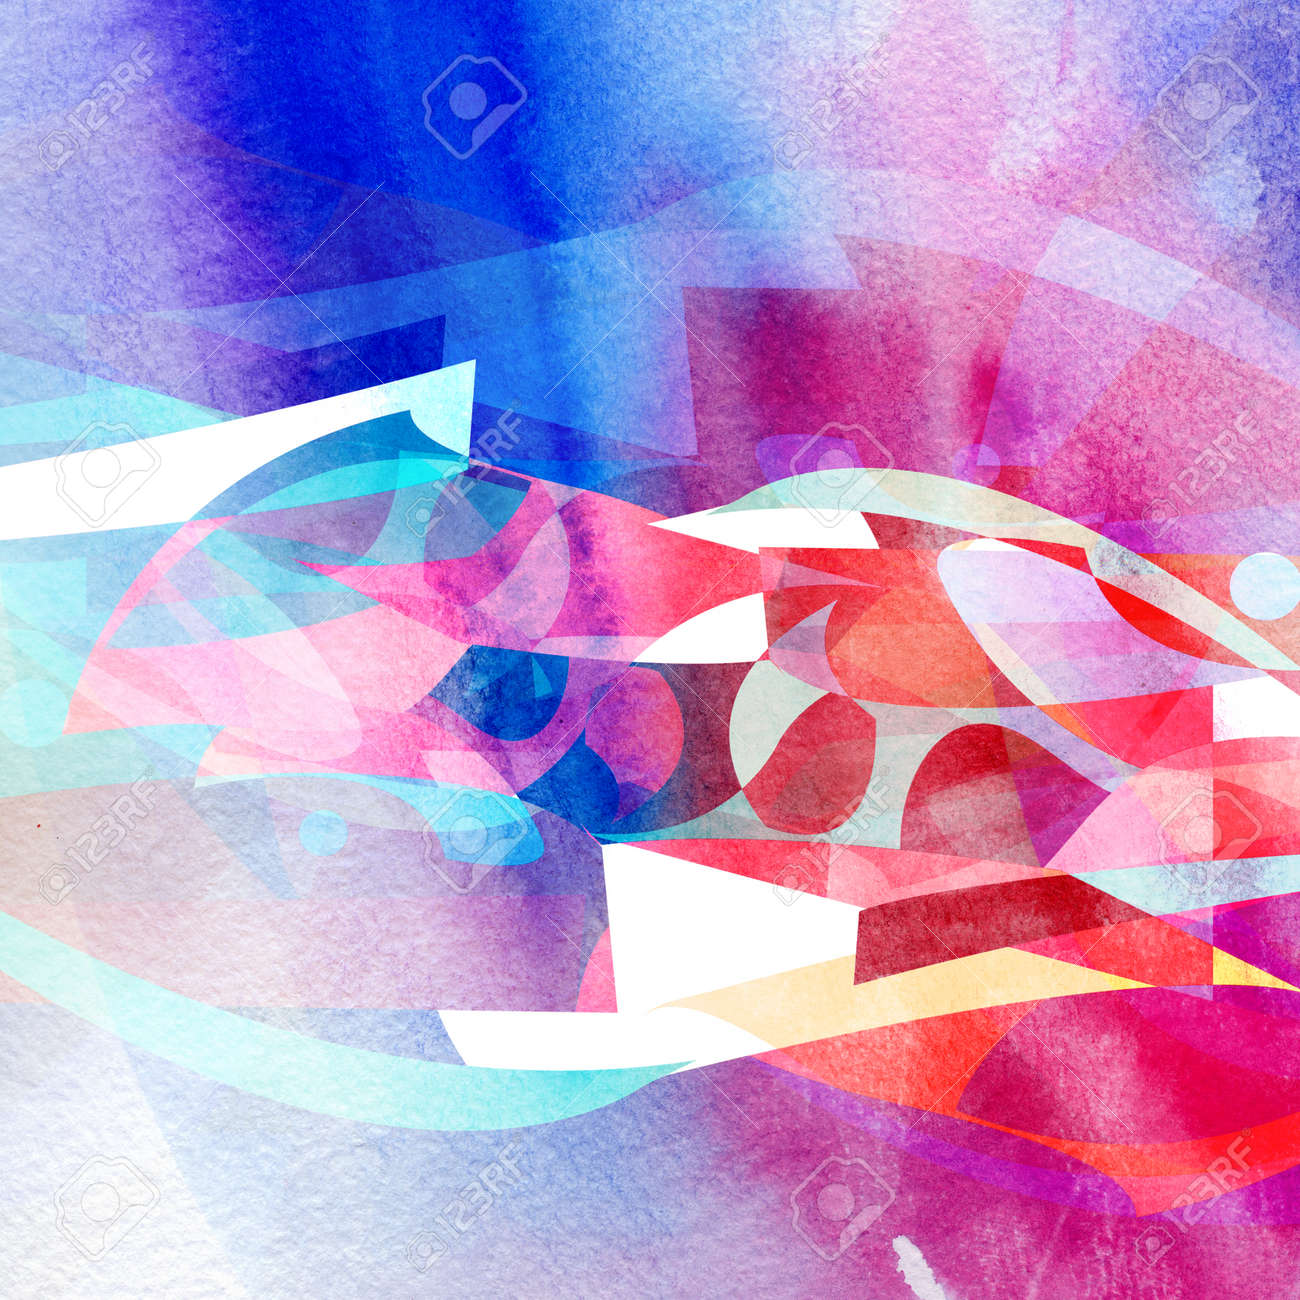 Abstract dynamic watercolor background with waves and lines - 165277878